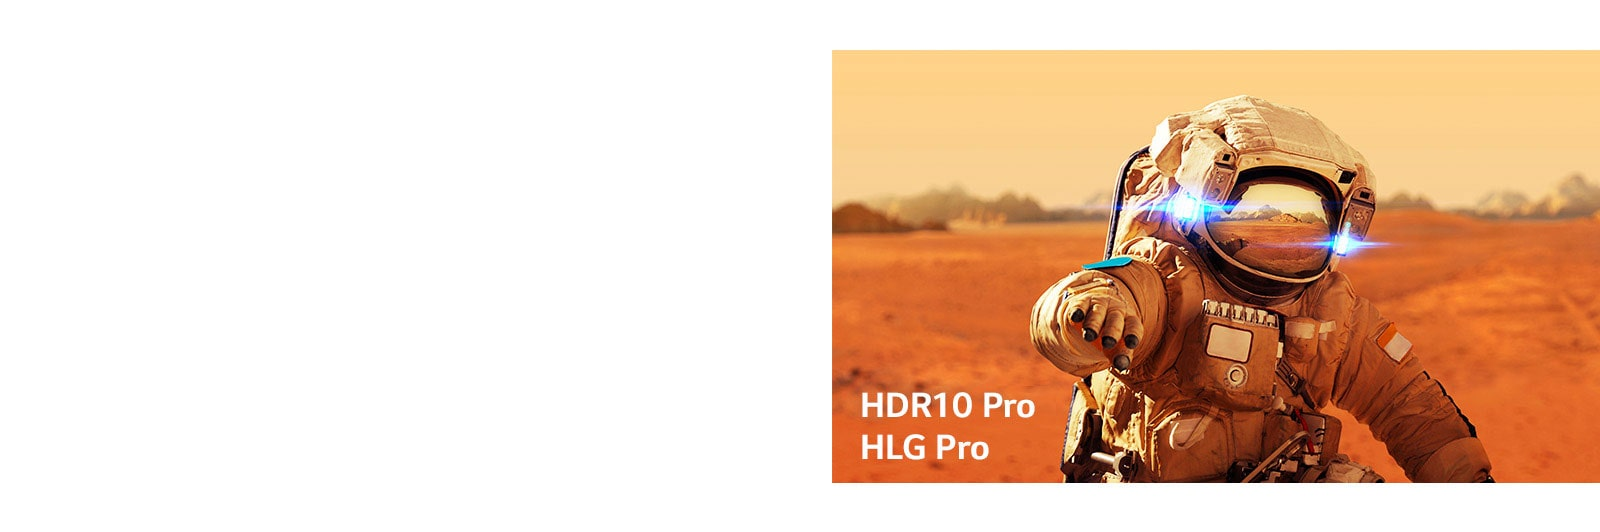 Marvel Iron Man, title cards with the HLG pro and HDR 10 Pro logos